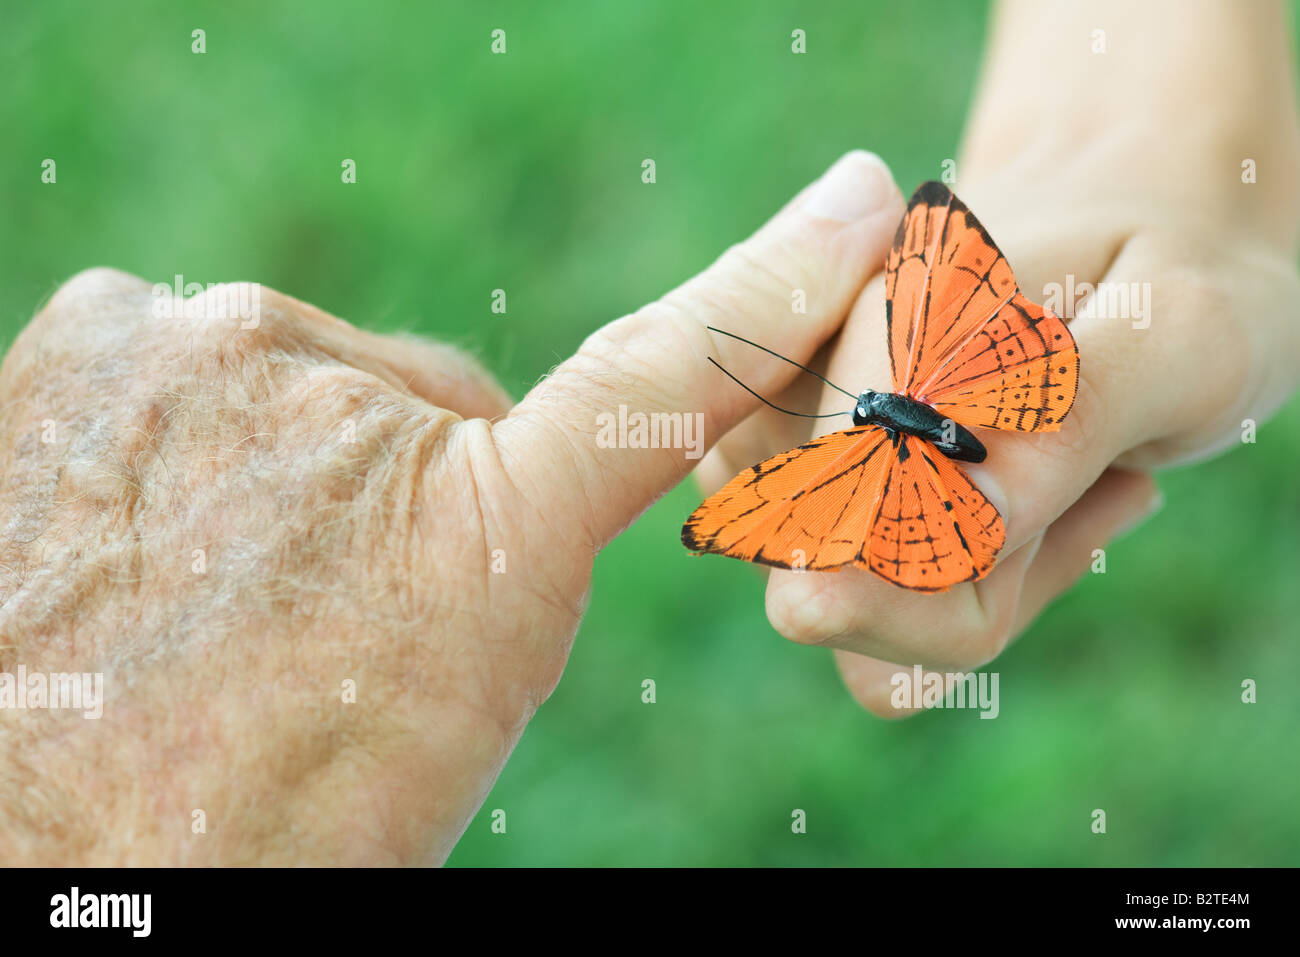 Manos de niños y ancianos con mariposas, close-up Imagen De Stock